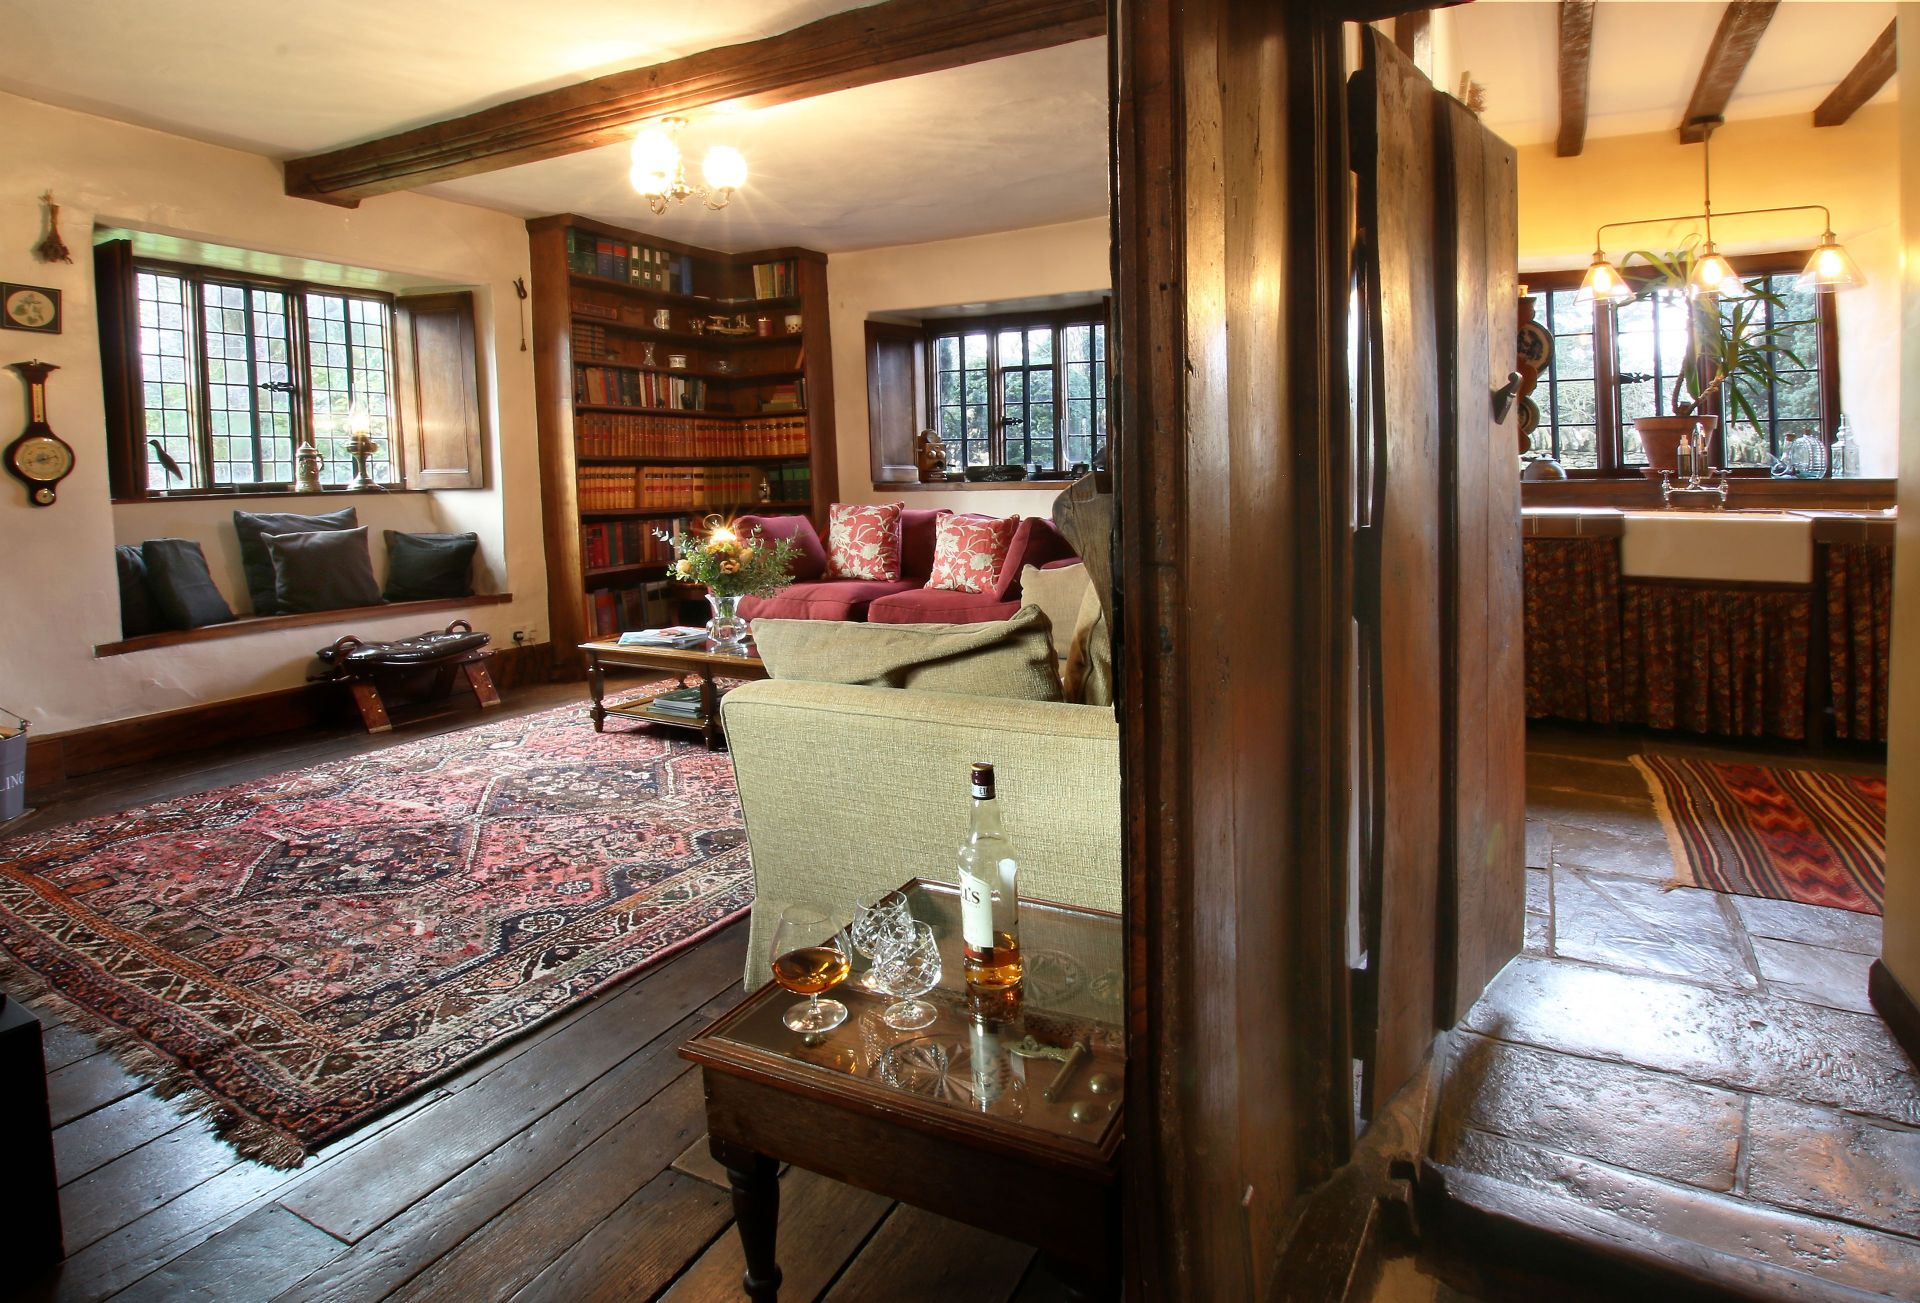 Another aspect of the Sitting Room and the Library